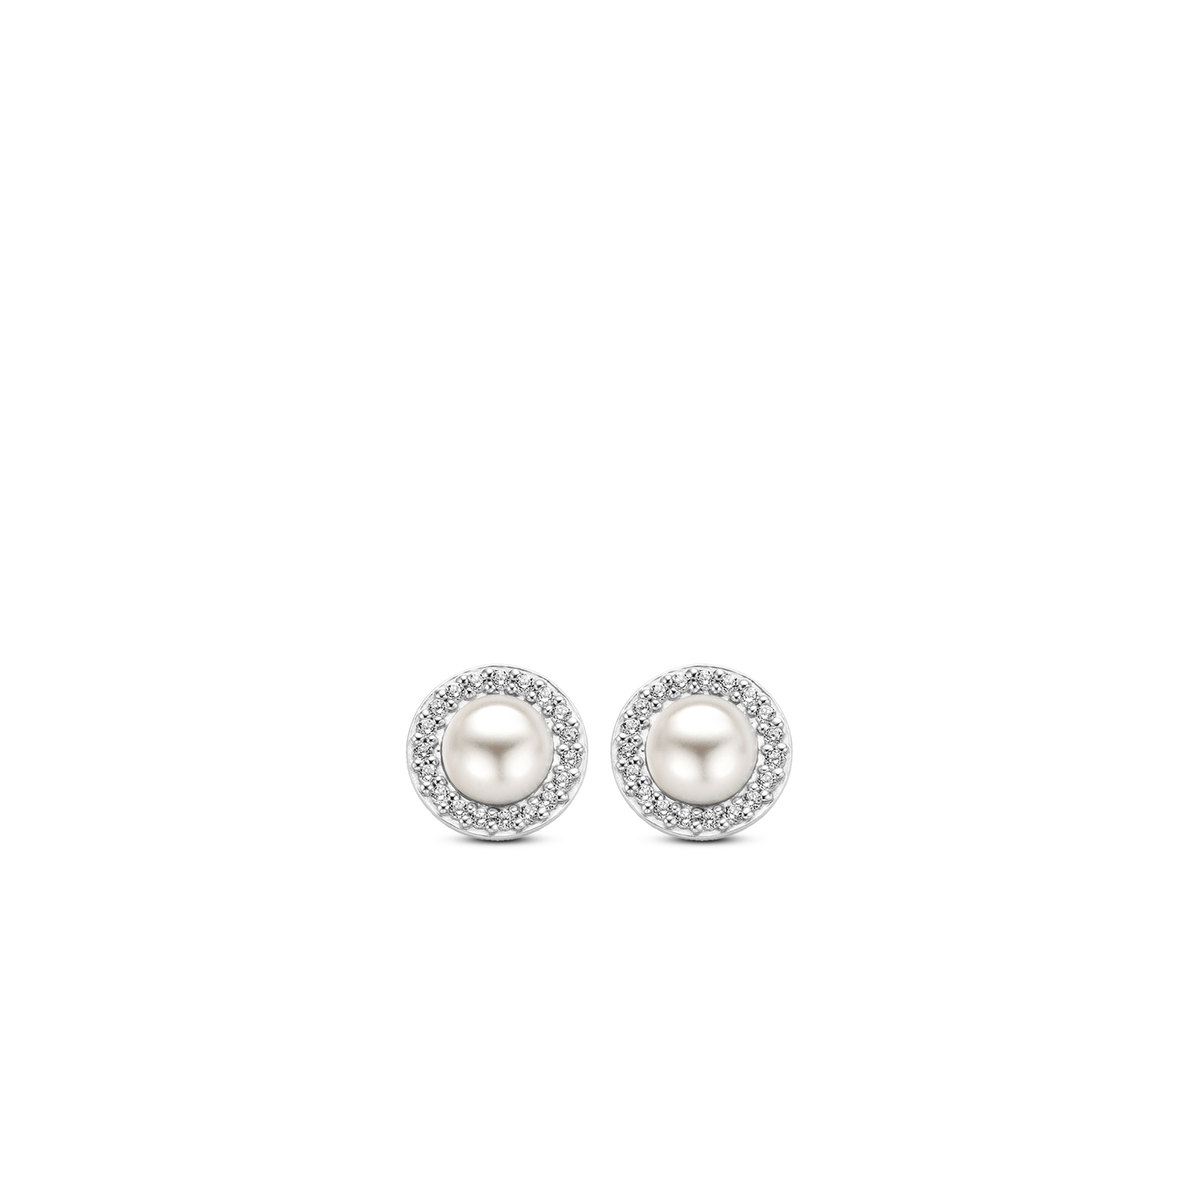 TI SENTO - Milano Earrings 7695PW